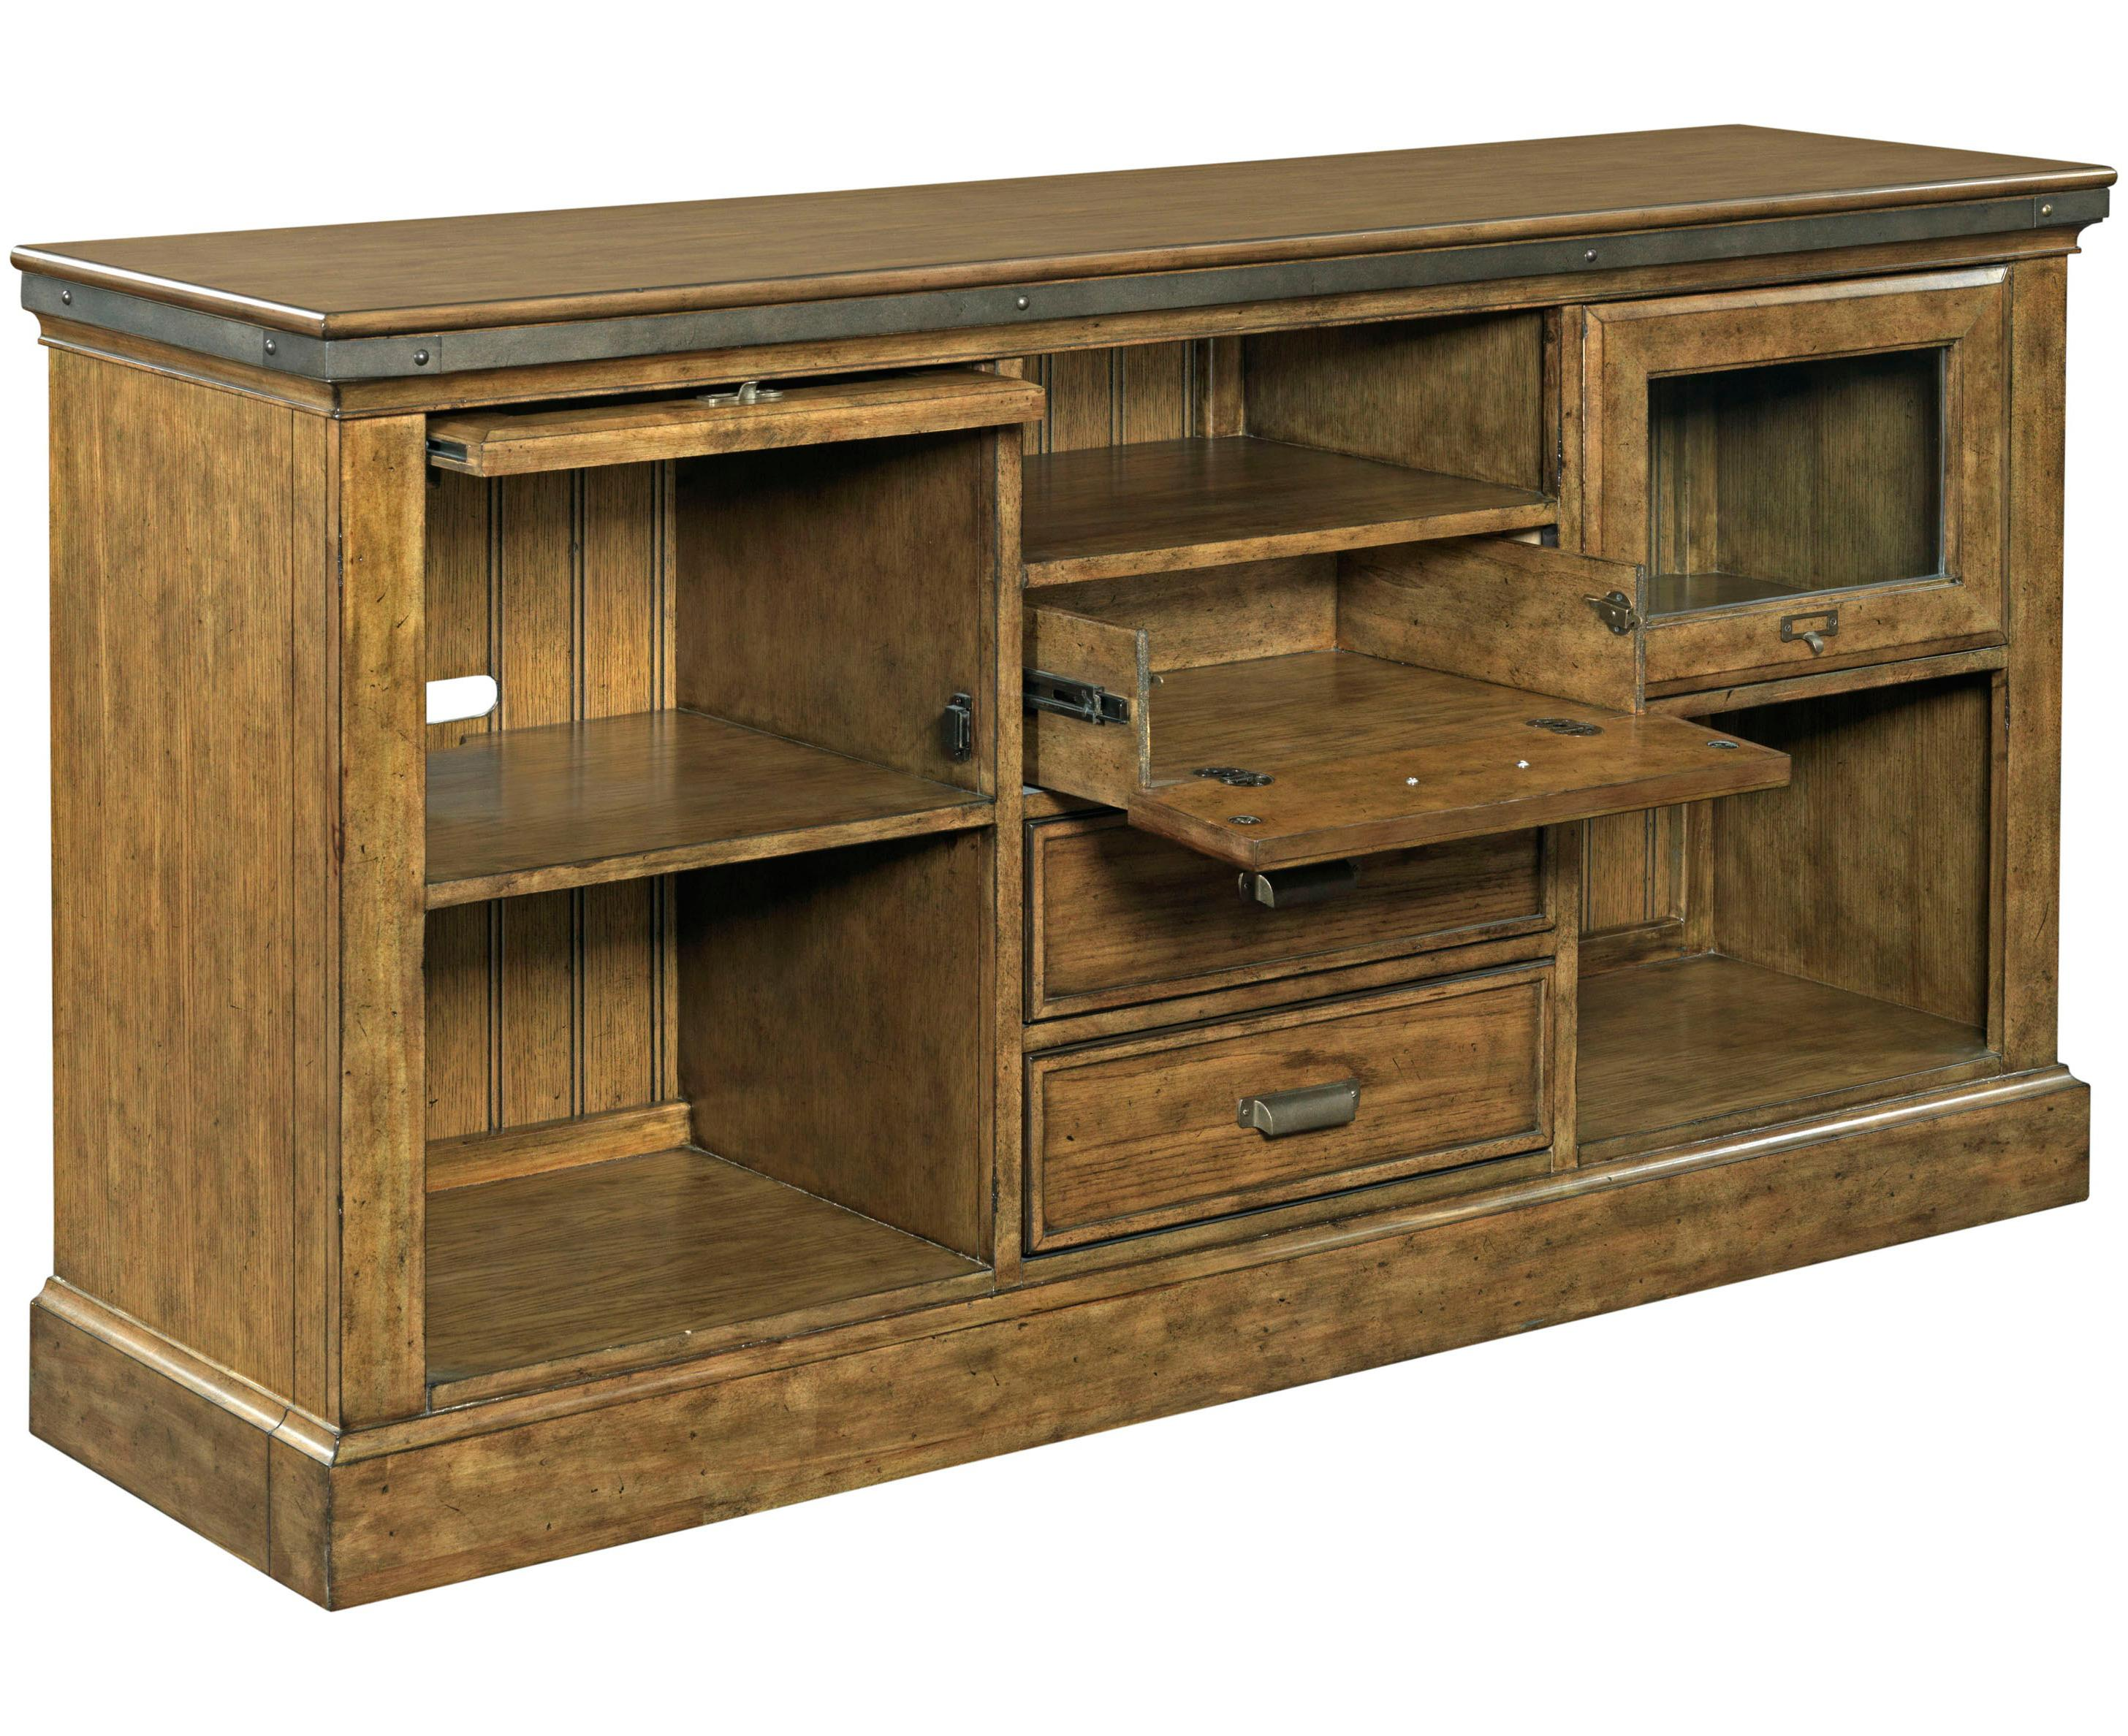 Broyhill Furniture New Vintage Barrister Console - Item Number: 4808-055